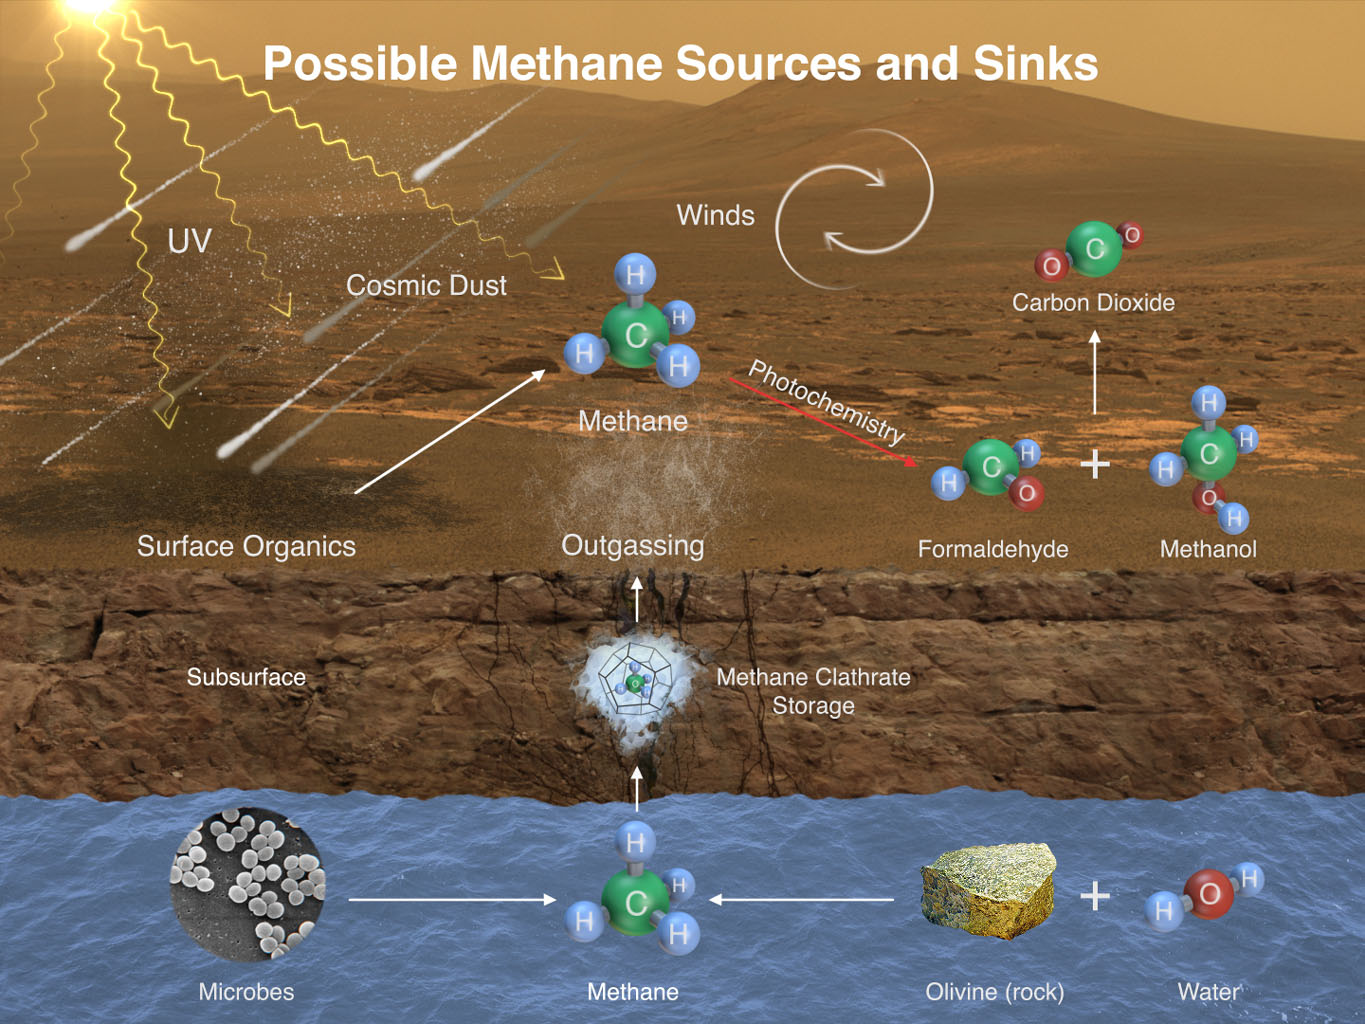 This illustration portrays possible ways methane might be added to Mars' atmosphere (sources) and removed from the atmosphere (sinks). NASA's Curiosity Mars rover has detected fluctuations in methane concentration in the atmosphere.